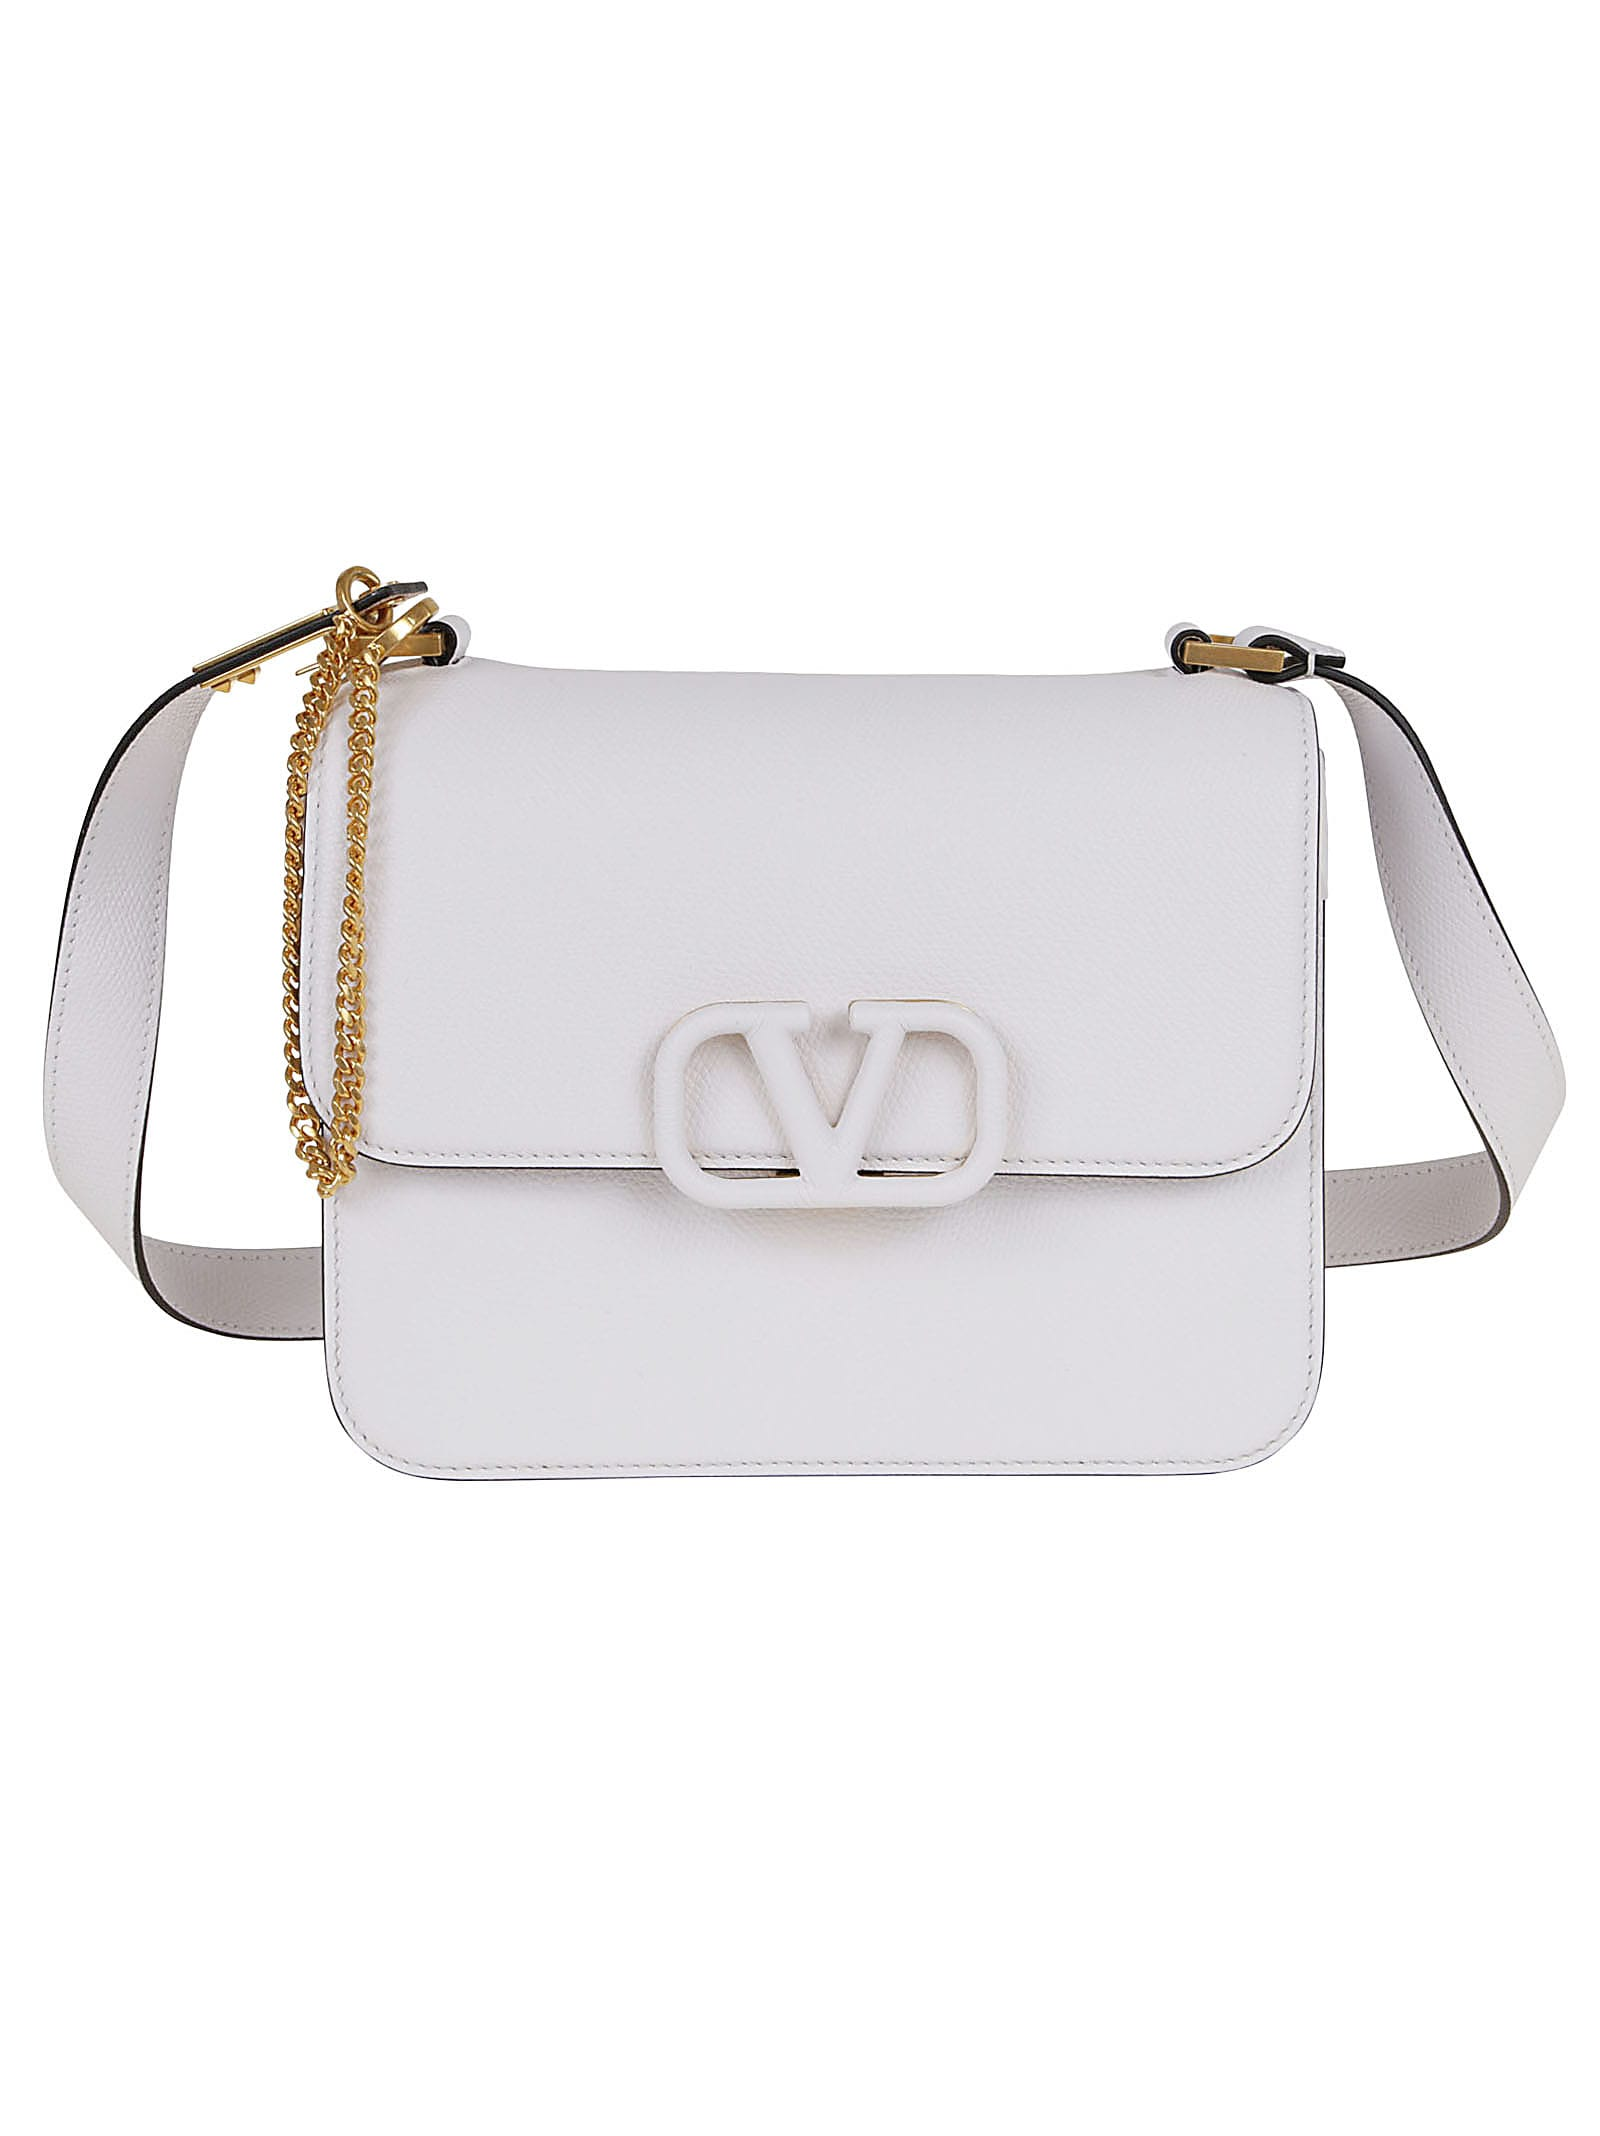 Valentino SHOULDER BAG VSLING